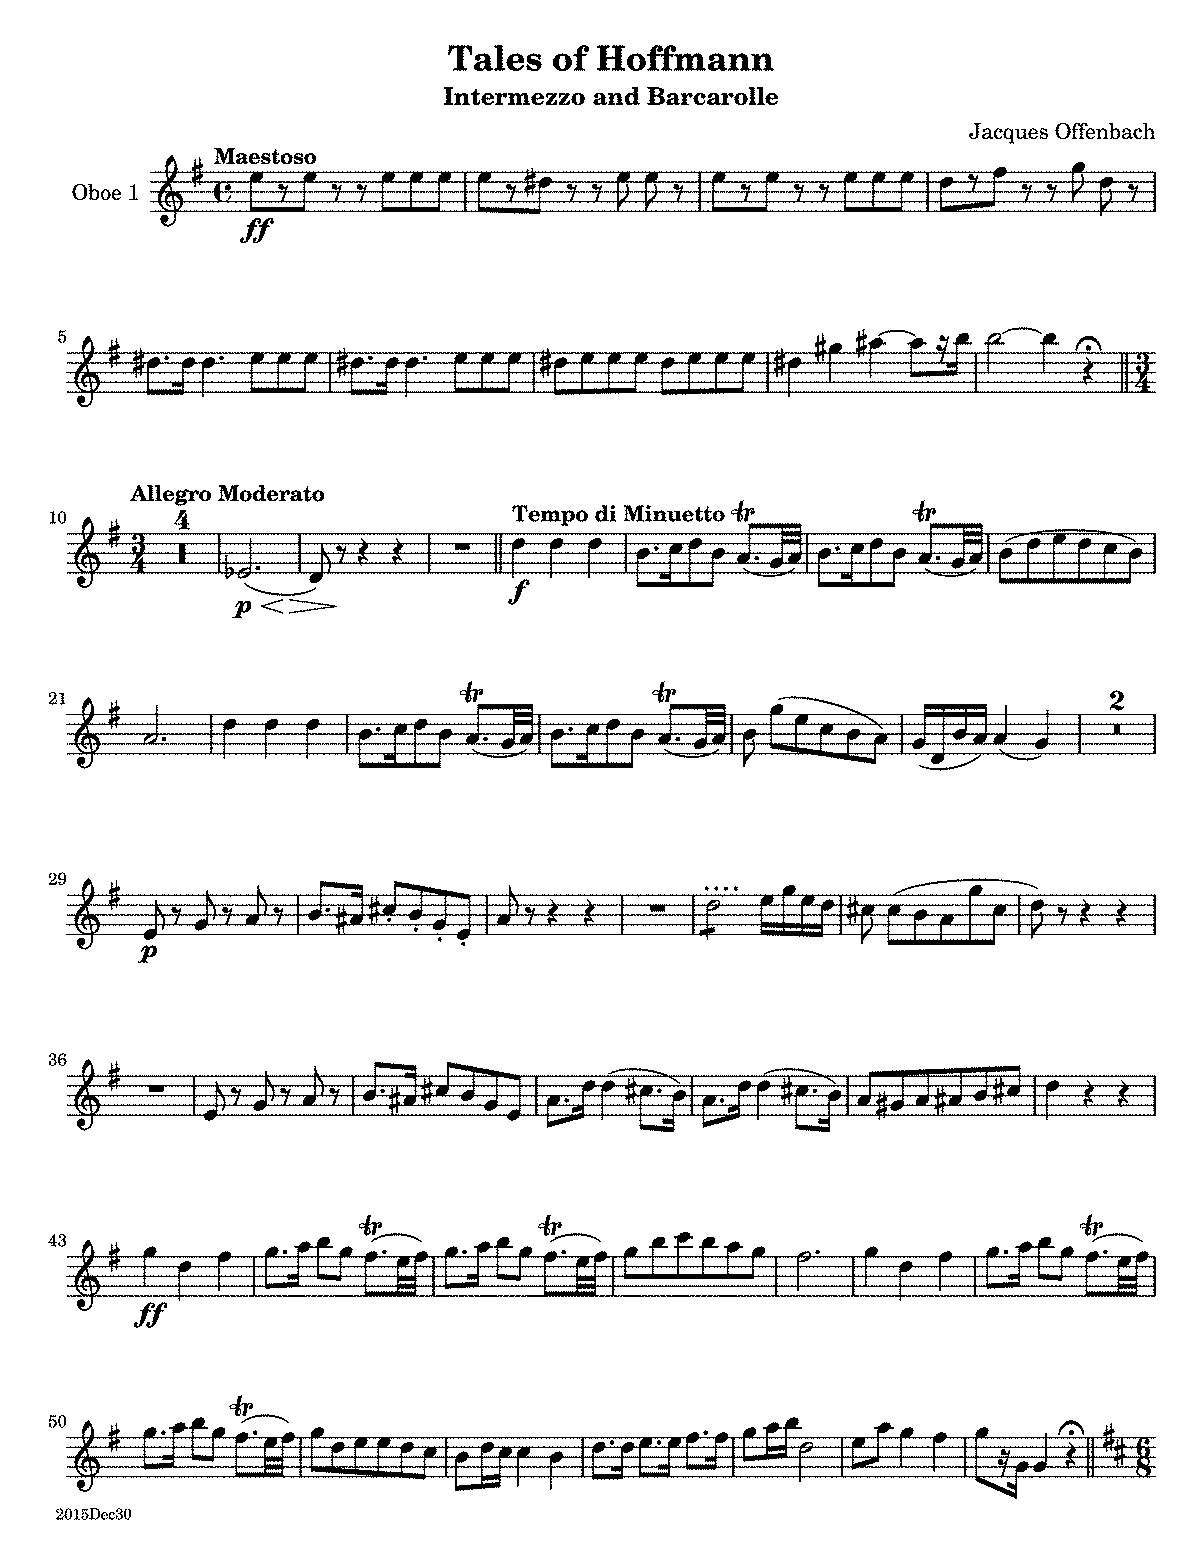 PMLP06710-Offenbach Tales of Hoffmann Intermezzo barcarolle Oboes.pdf